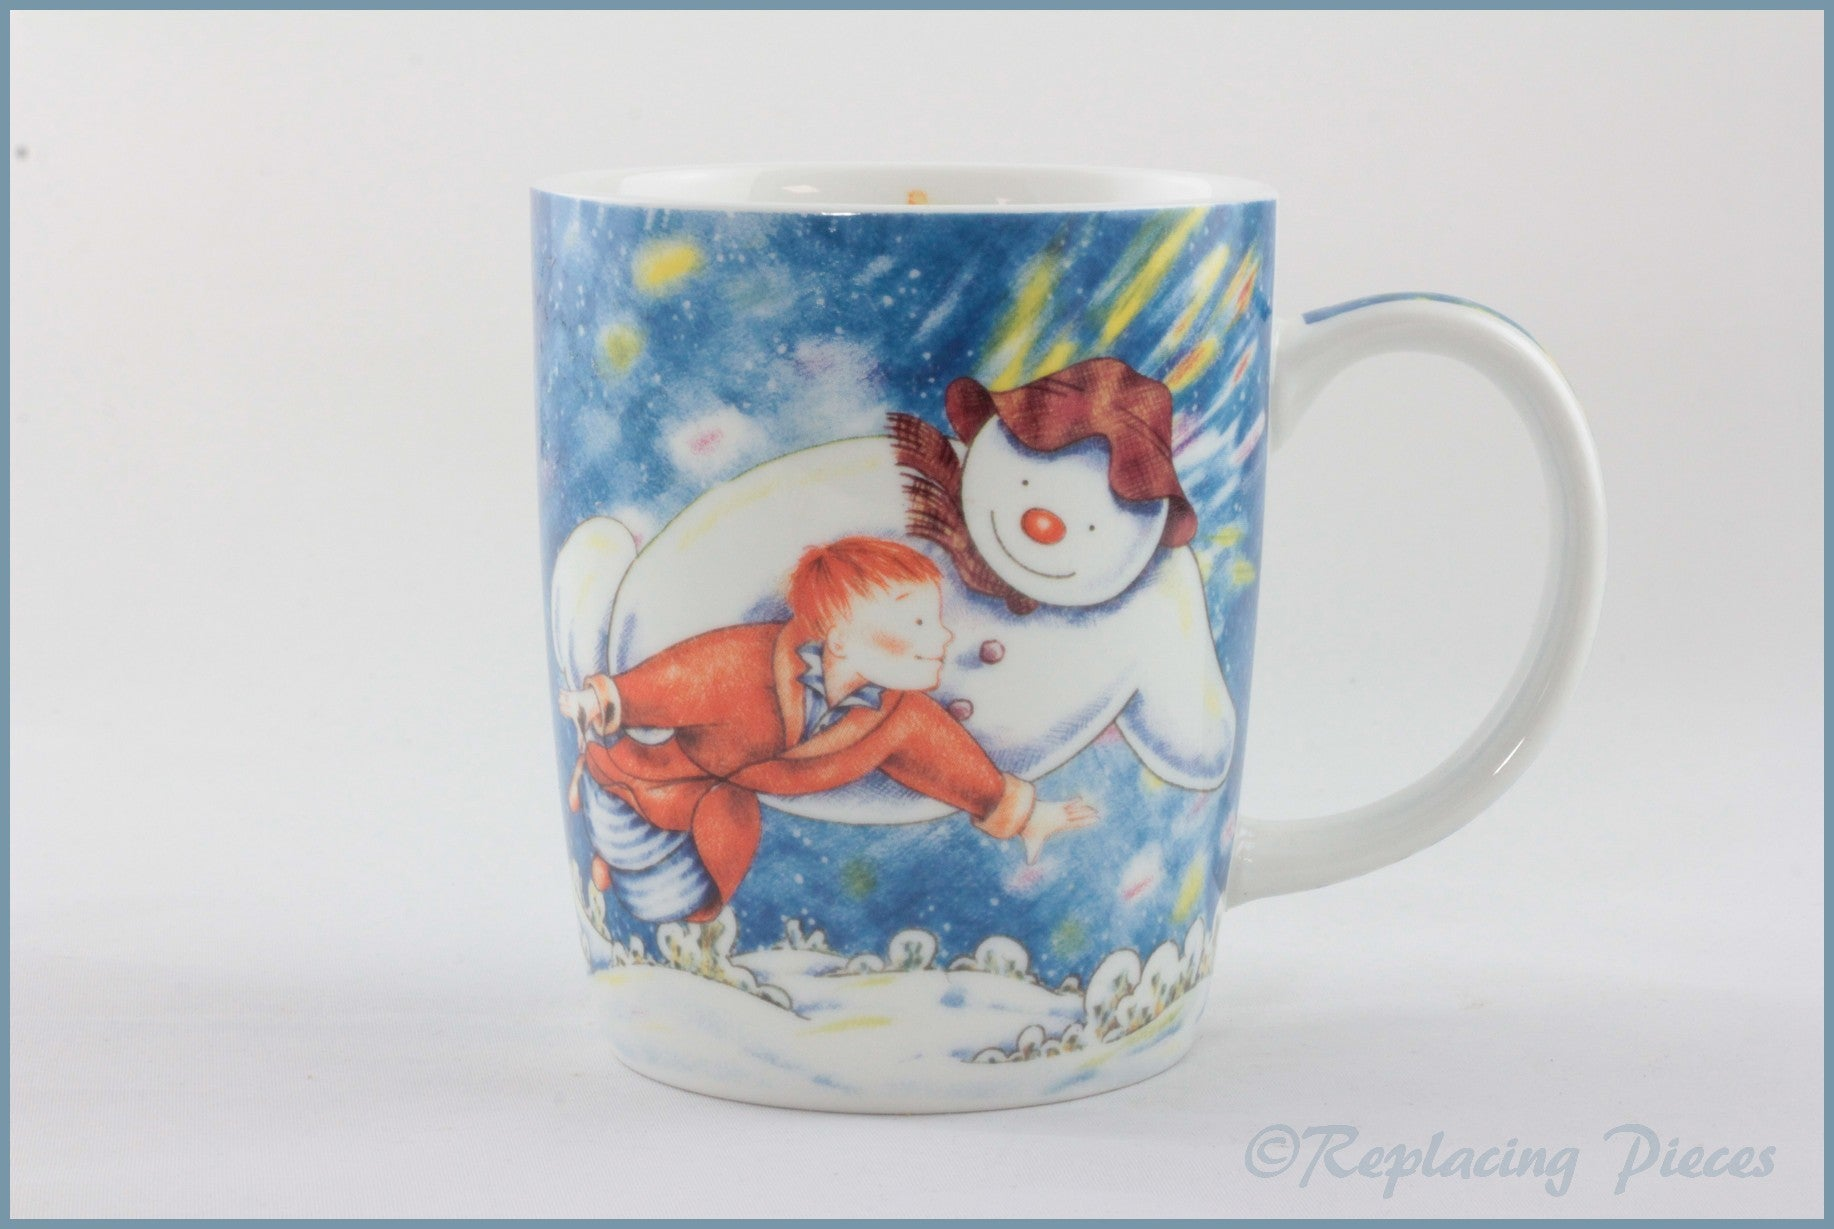 Johnson Brothers  - The Snowman - Large Mug